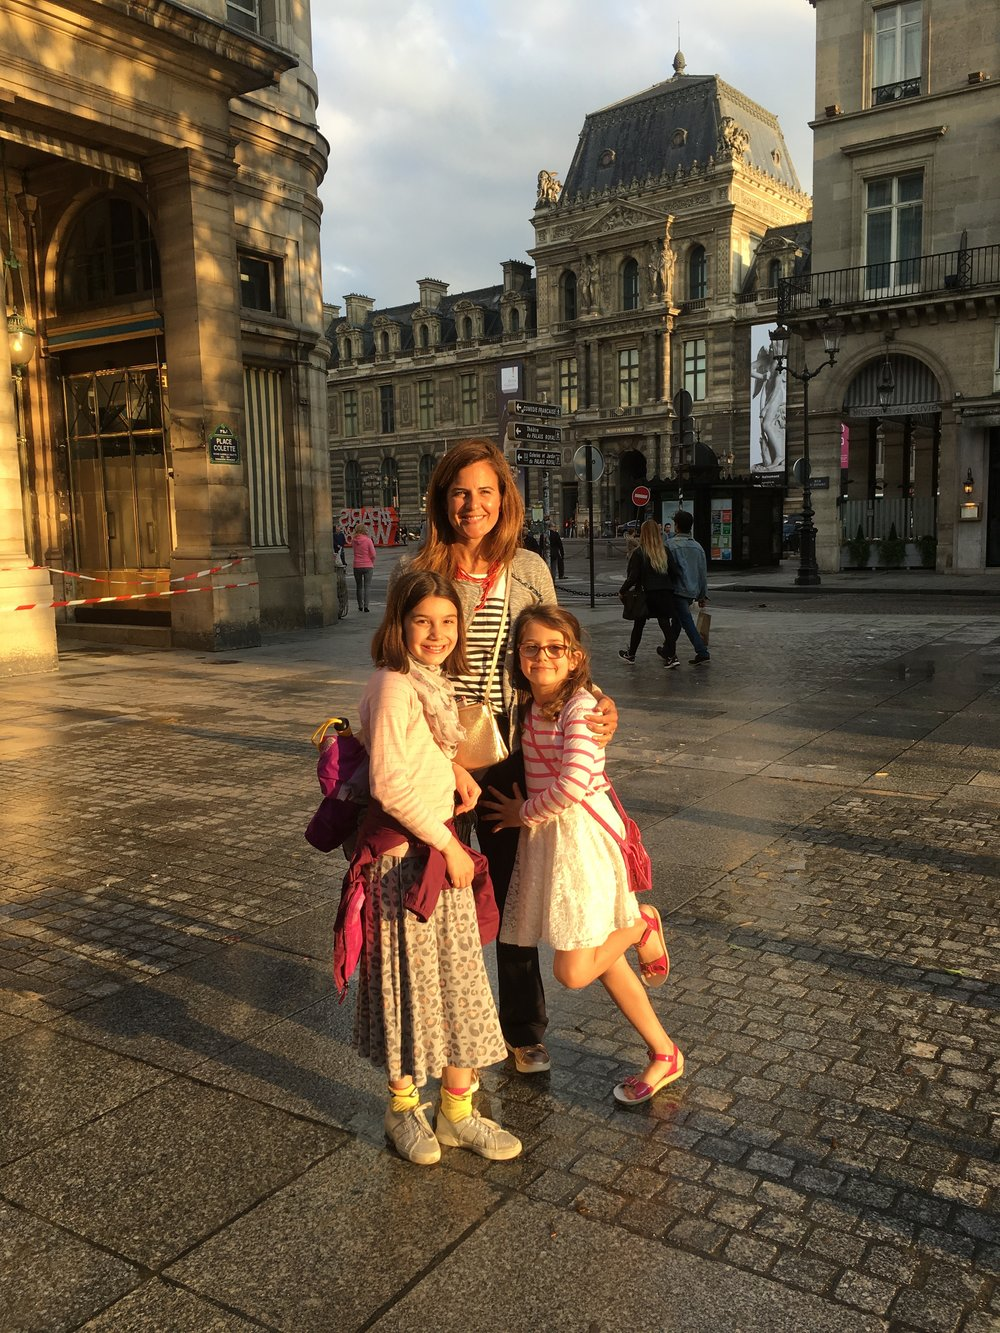 Nicole, with her two daughters